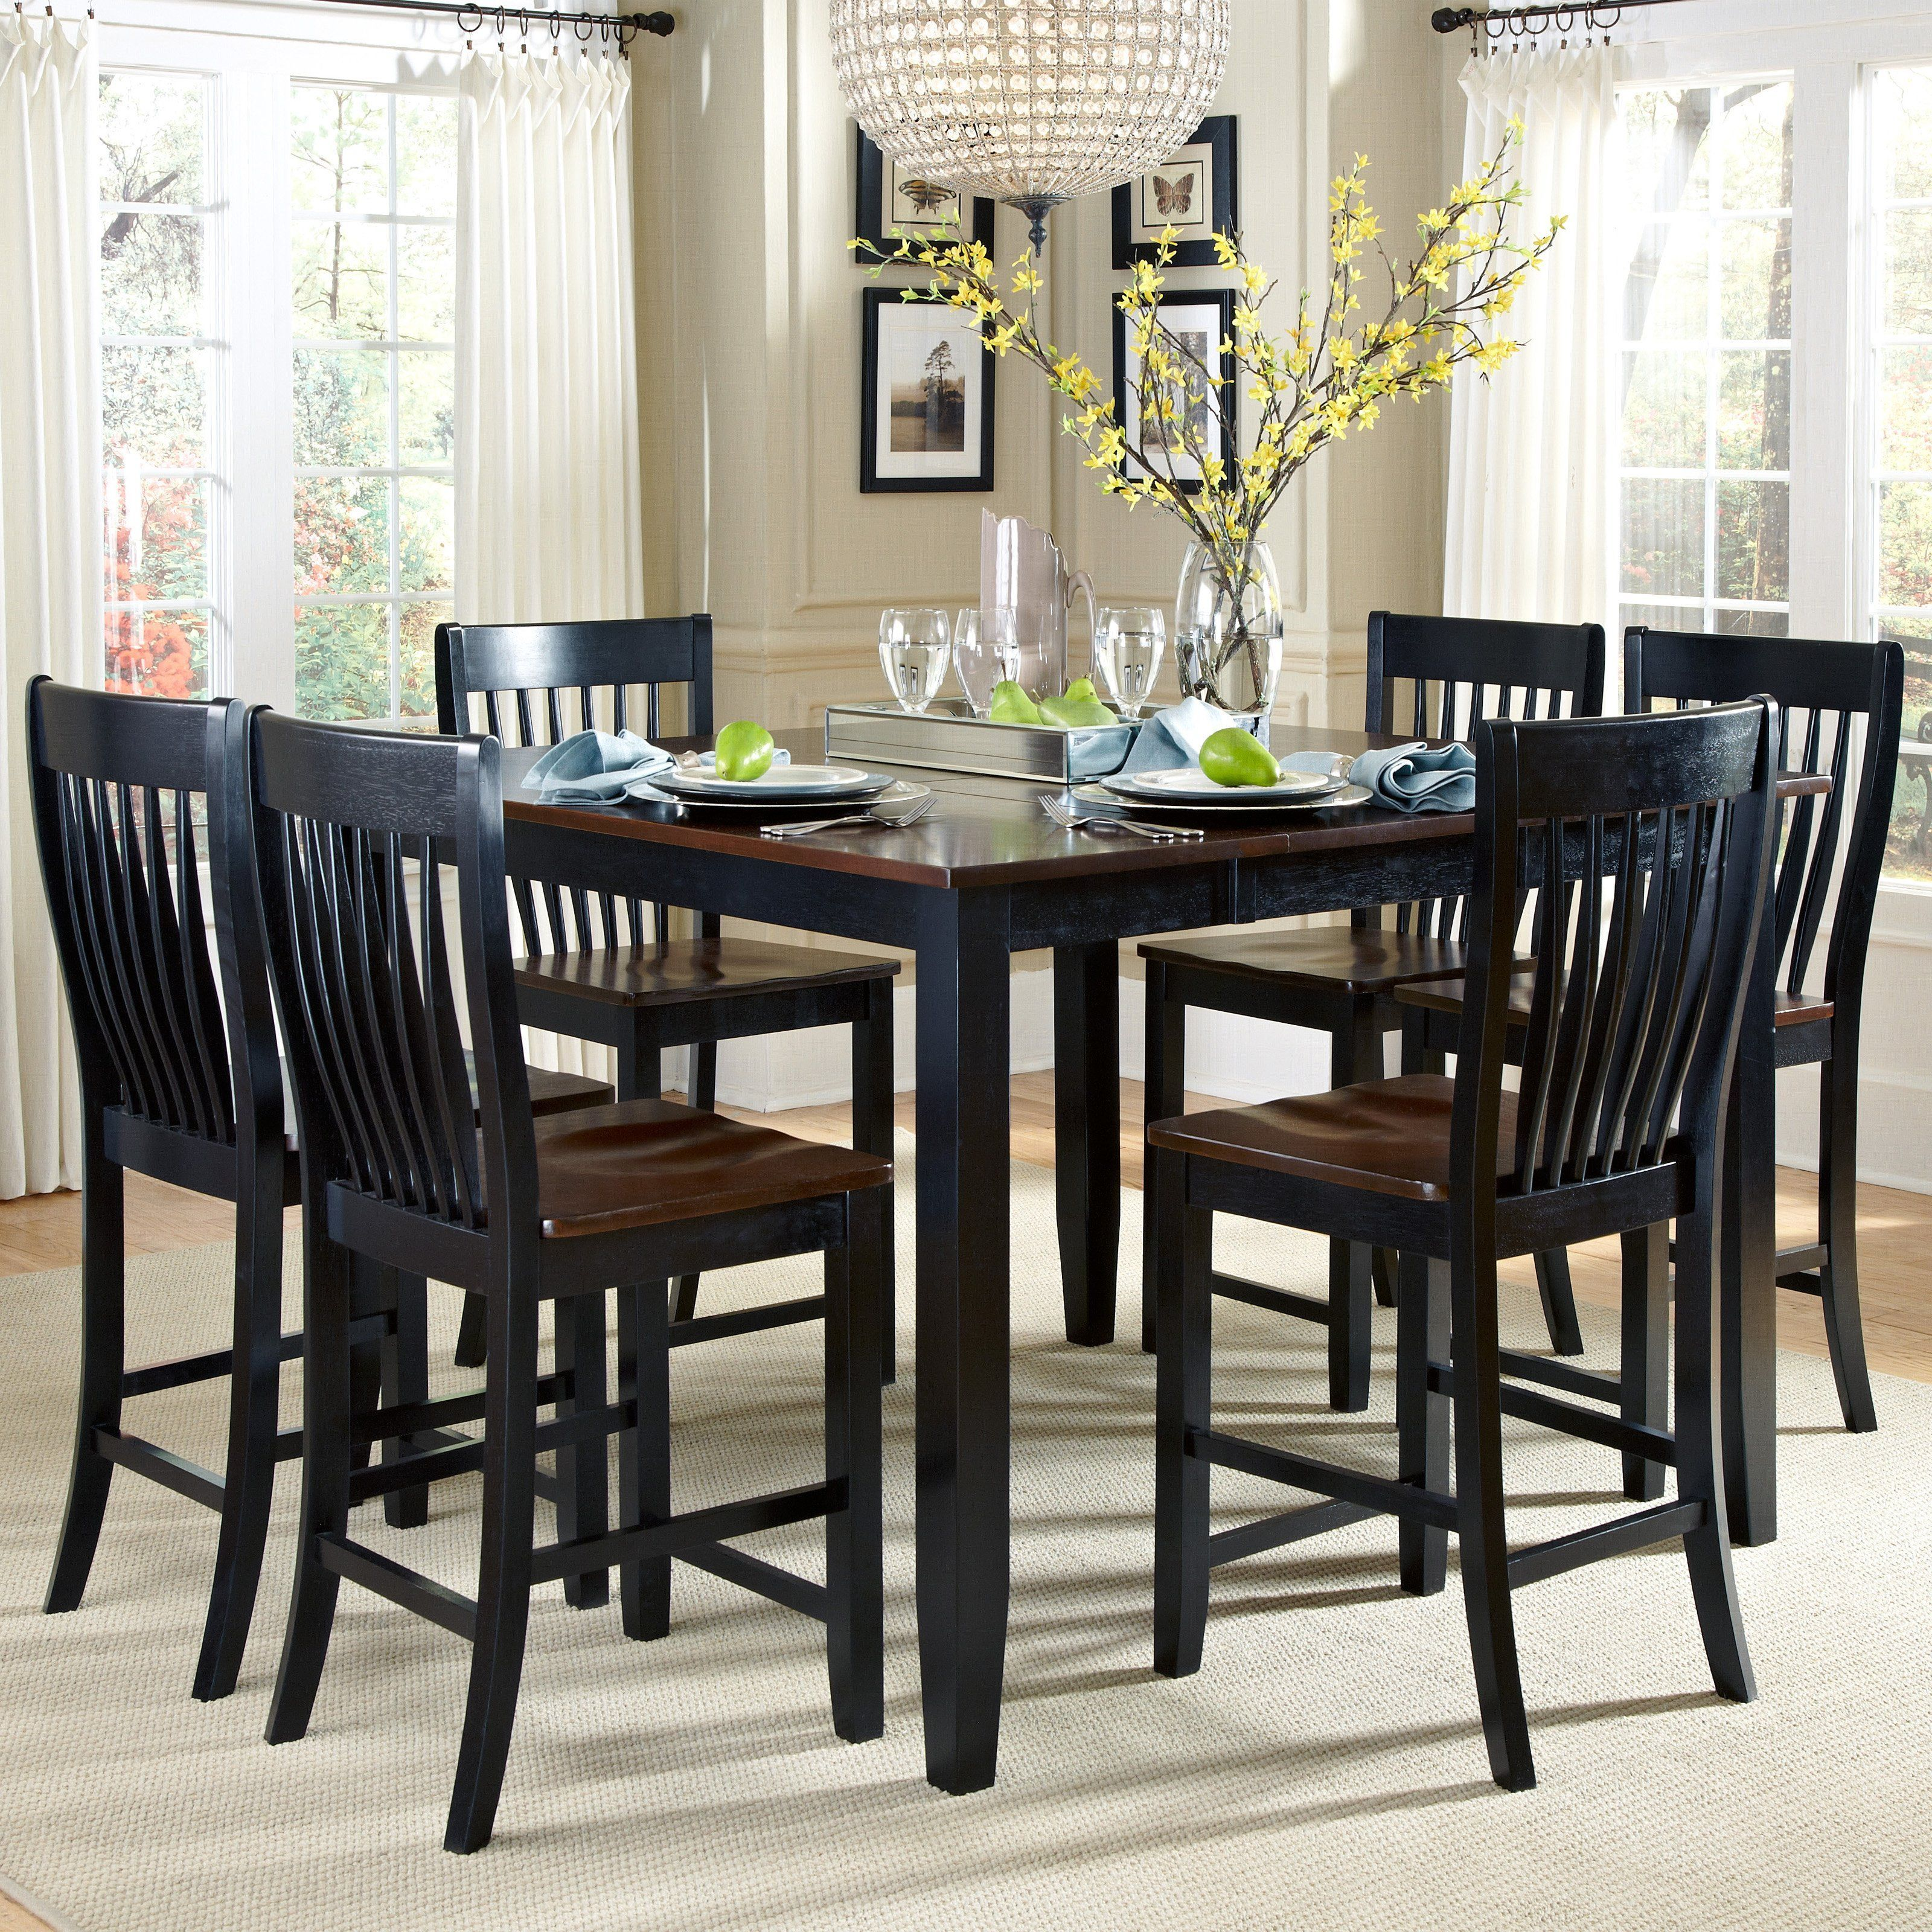 Hayneedle Dining Room Sets